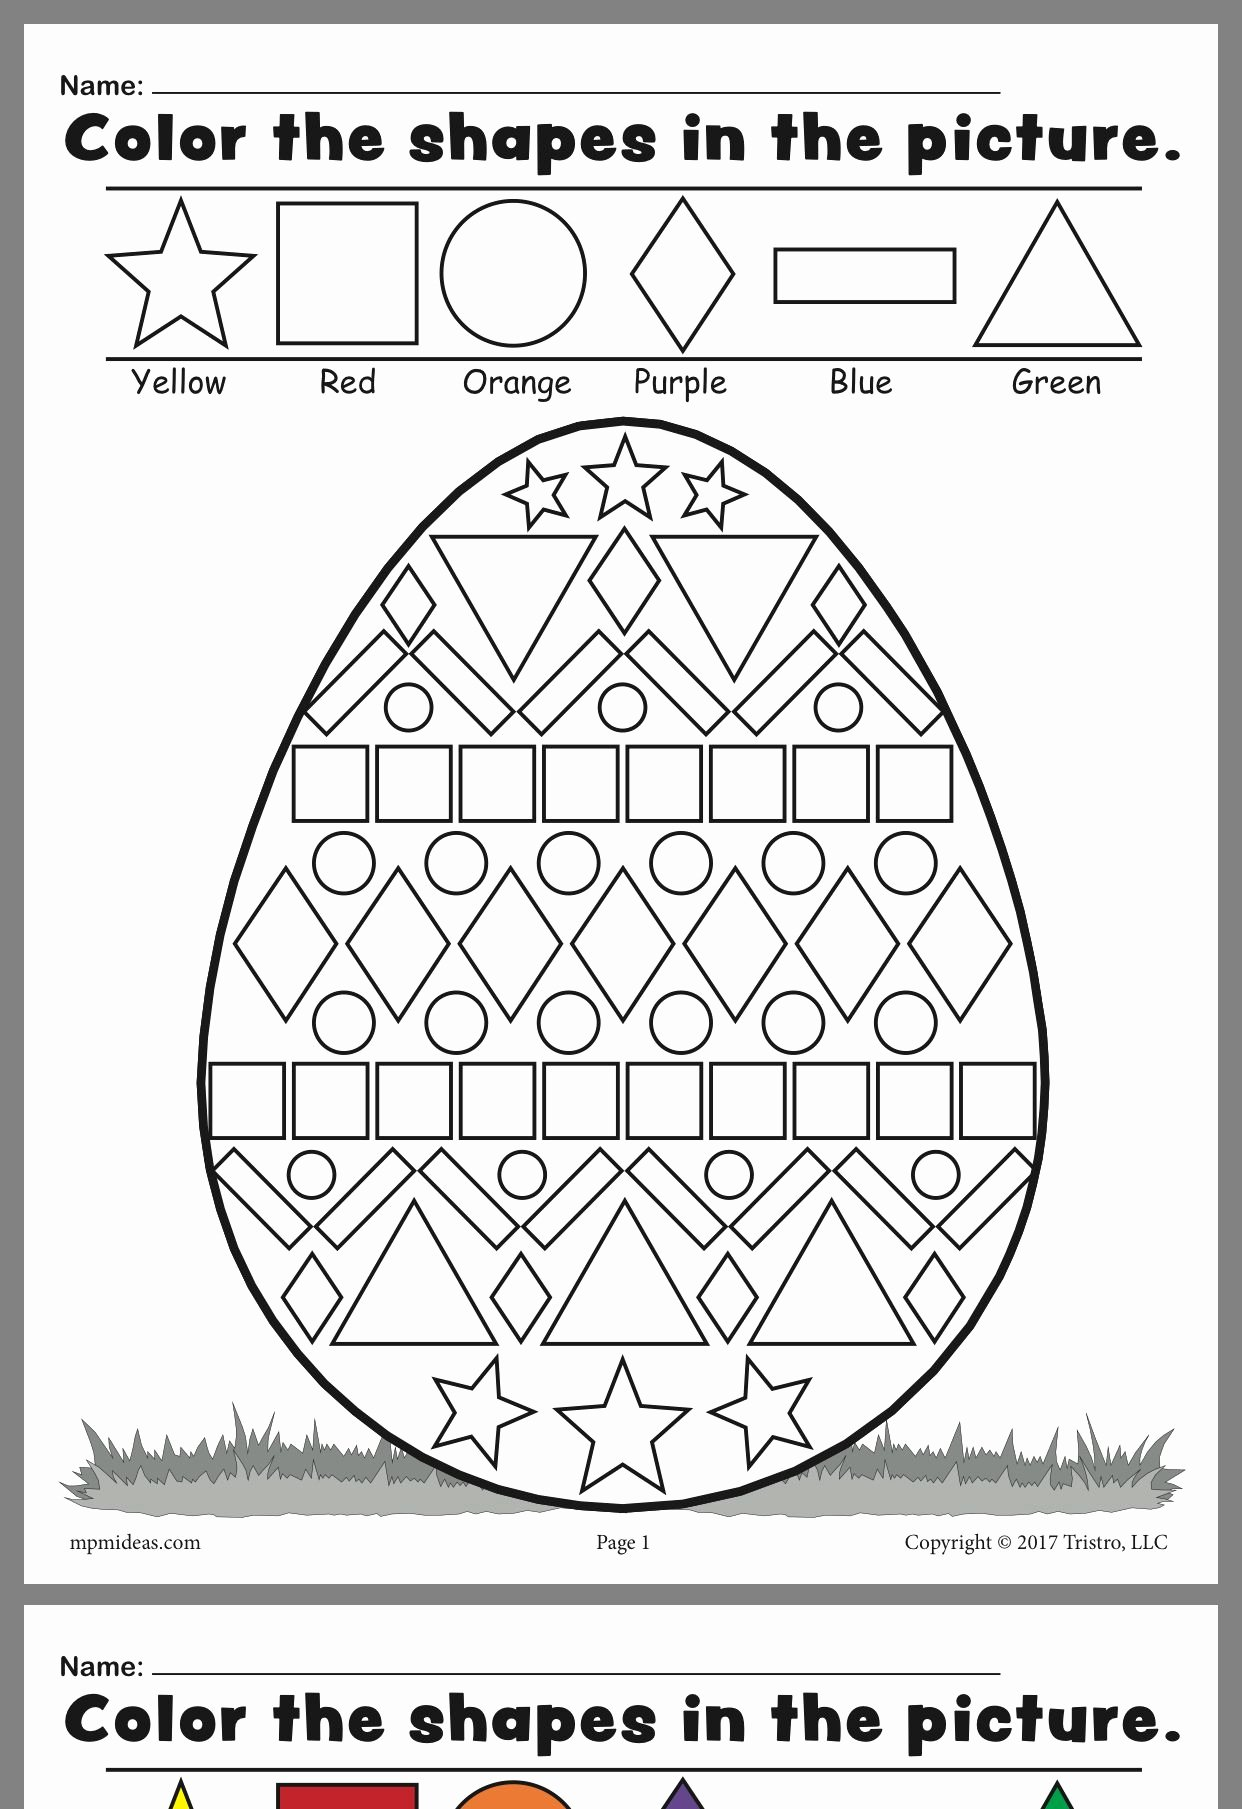 Free Printable Easter Worksheets for Preschoolers top Here S A Fun Worksheet that You Can and Print for